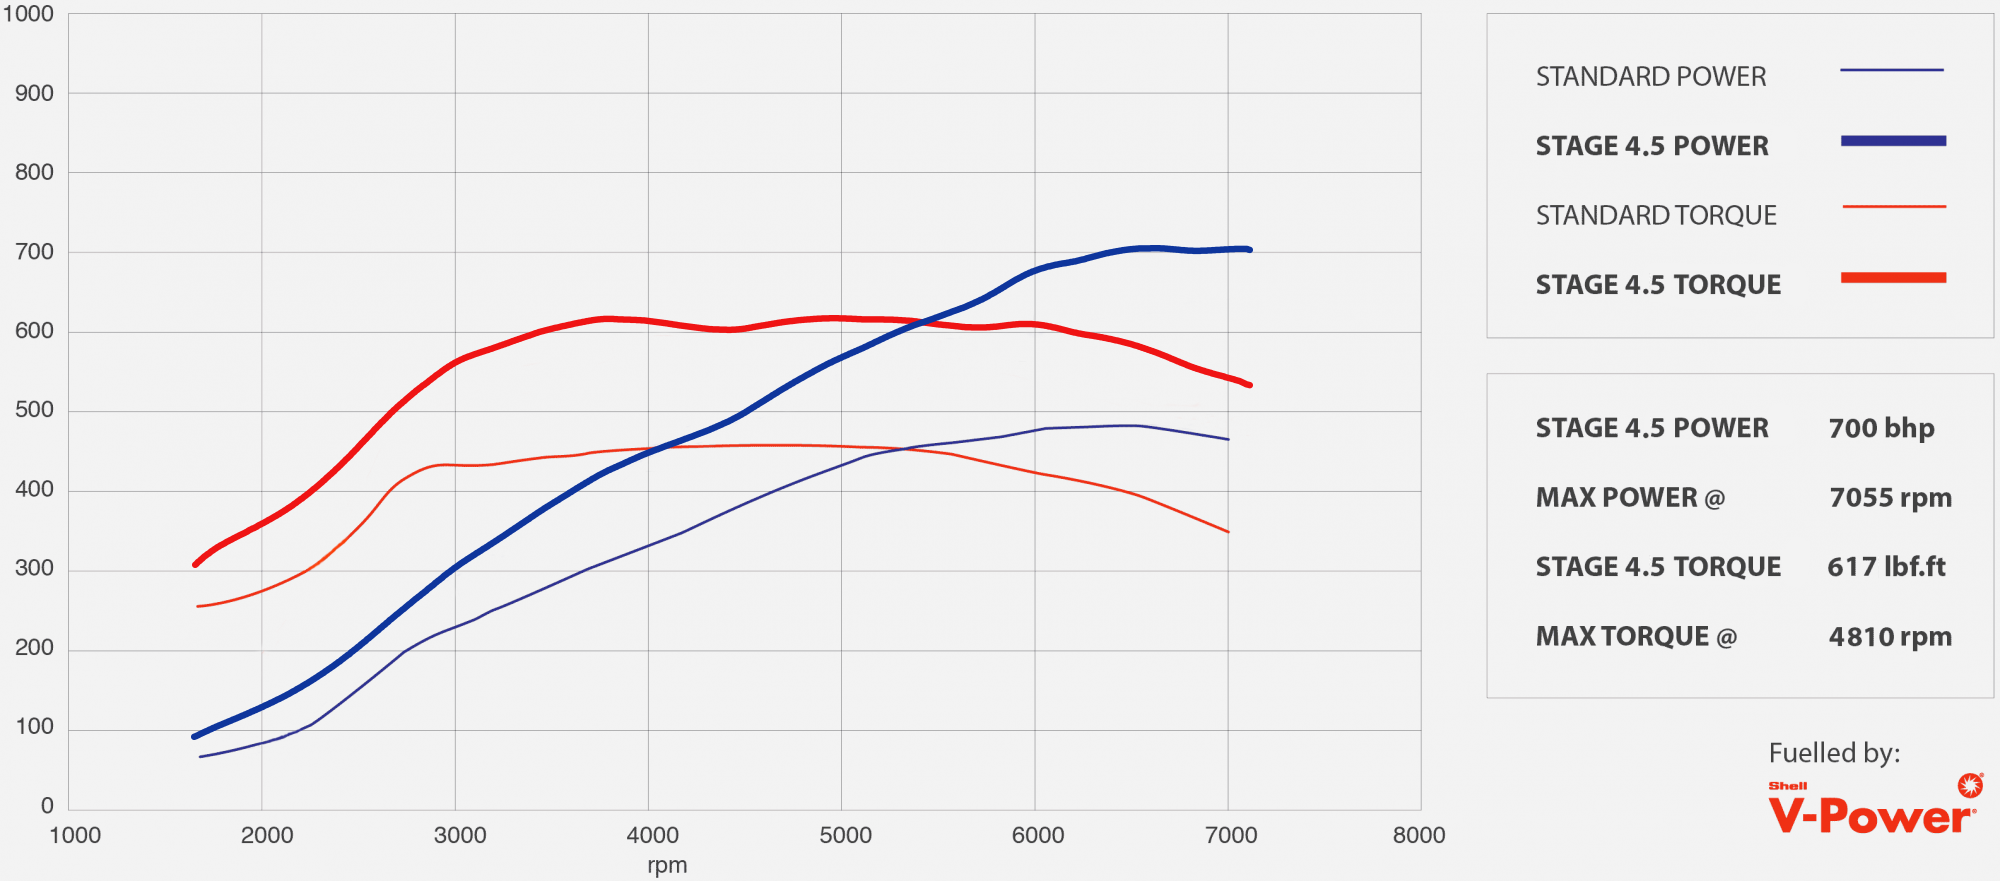 GTR tuning stage 4.5 power graph